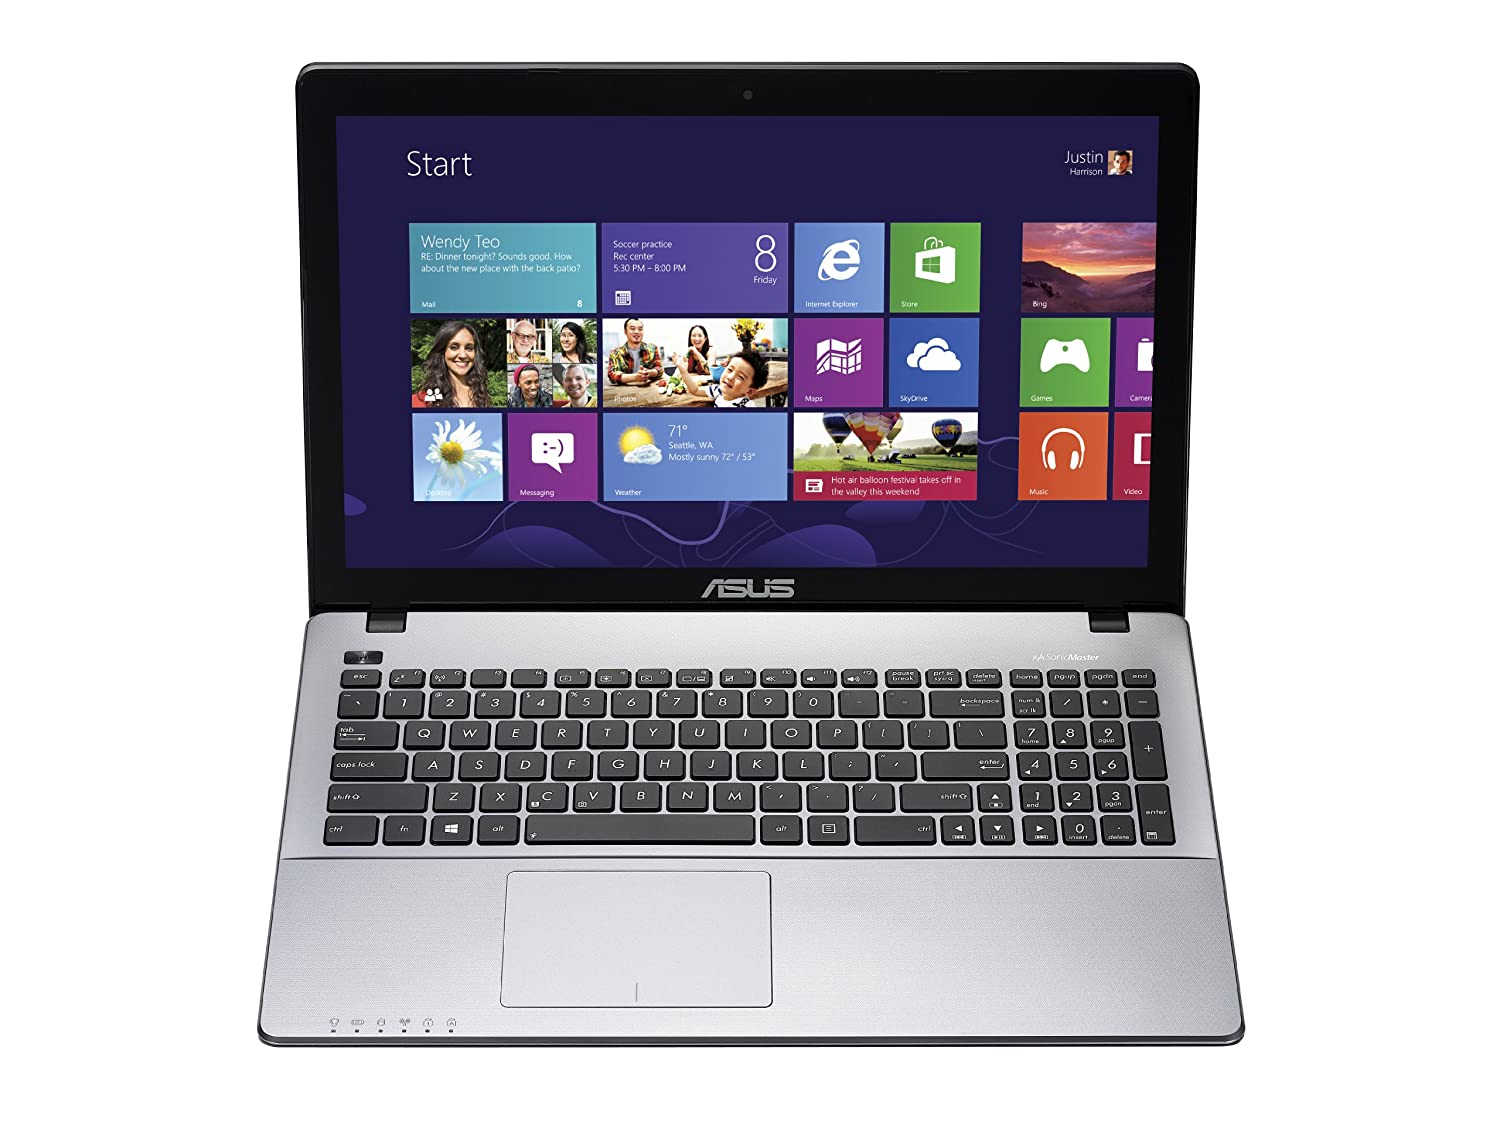 ASUS K550CA NOTEBOOK DRIVERS WINDOWS 7